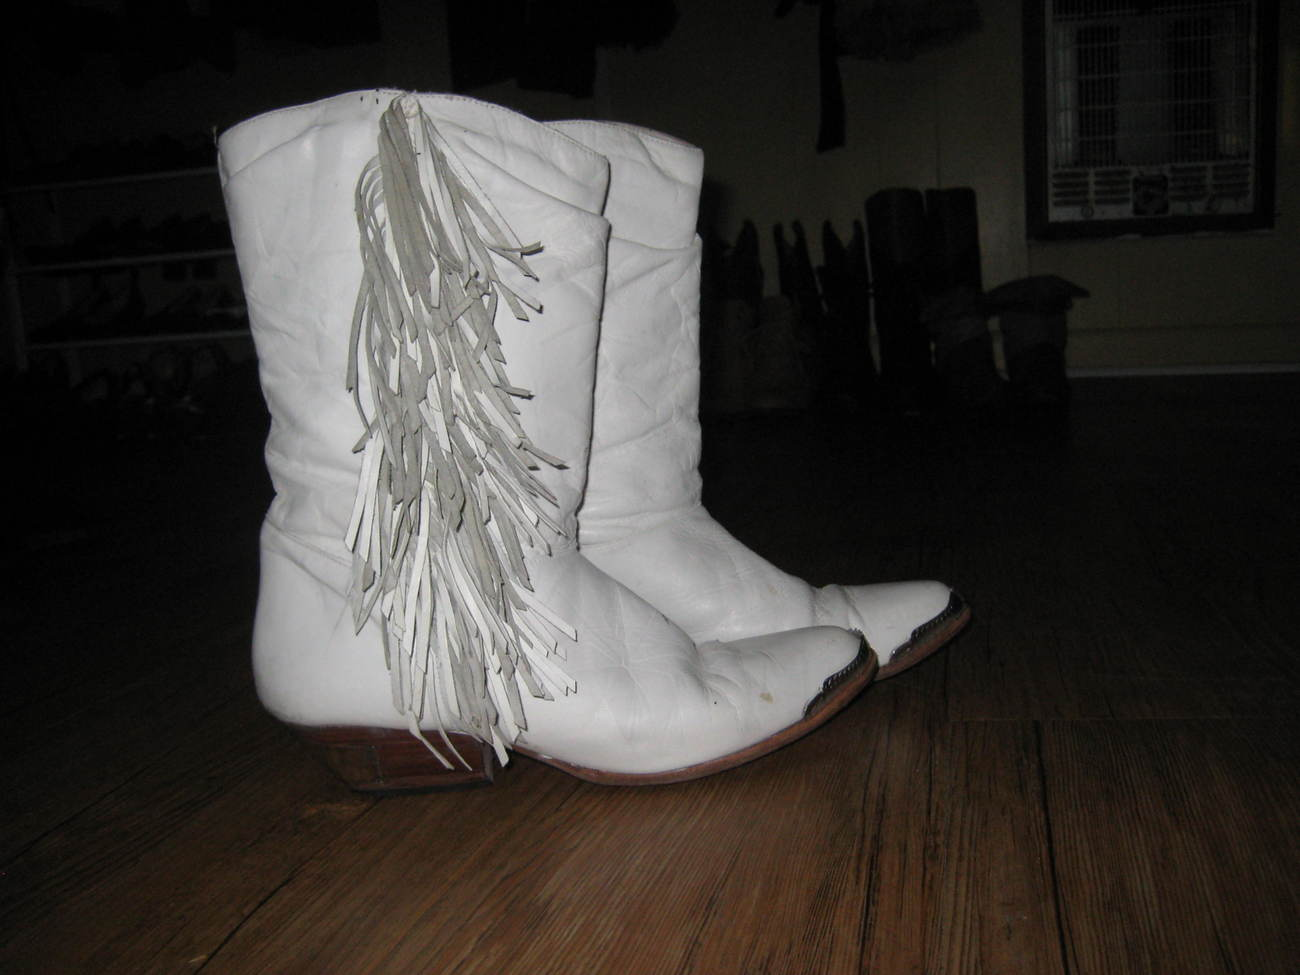 fringe cowboy boots knoxville tnGoodbuy of the Day  Vintage White Leather Fringe Cowboy Boots 10 iEyZTh14